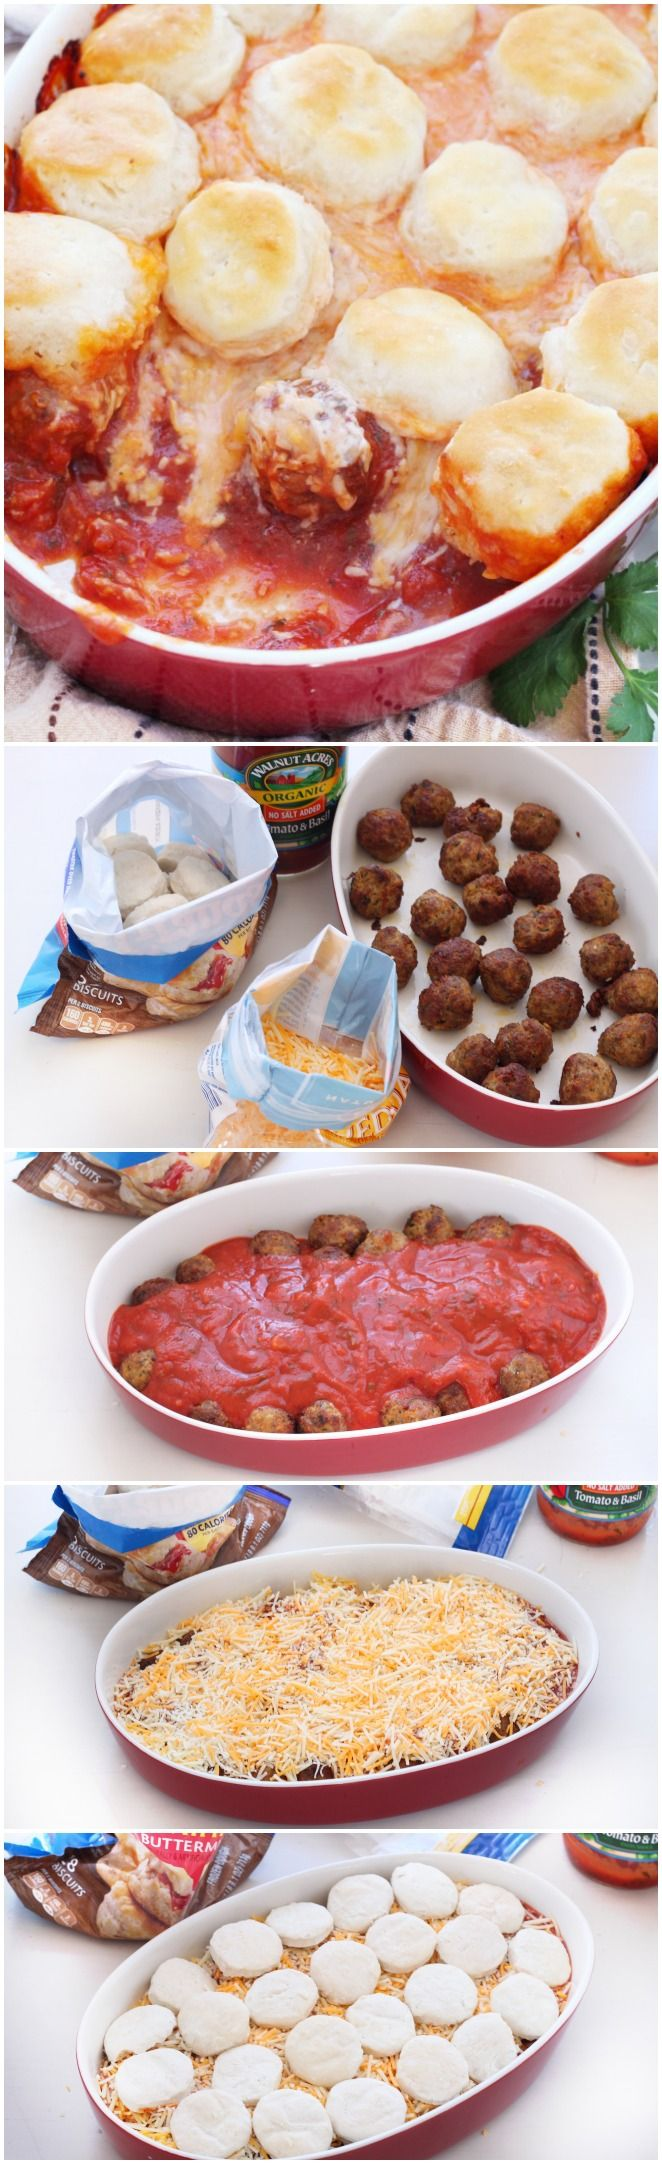 A simple recipe for upside down meatball casserole. With less than 15 minutes of prep time, this hearty and satisfying casserole is comfort food at its best